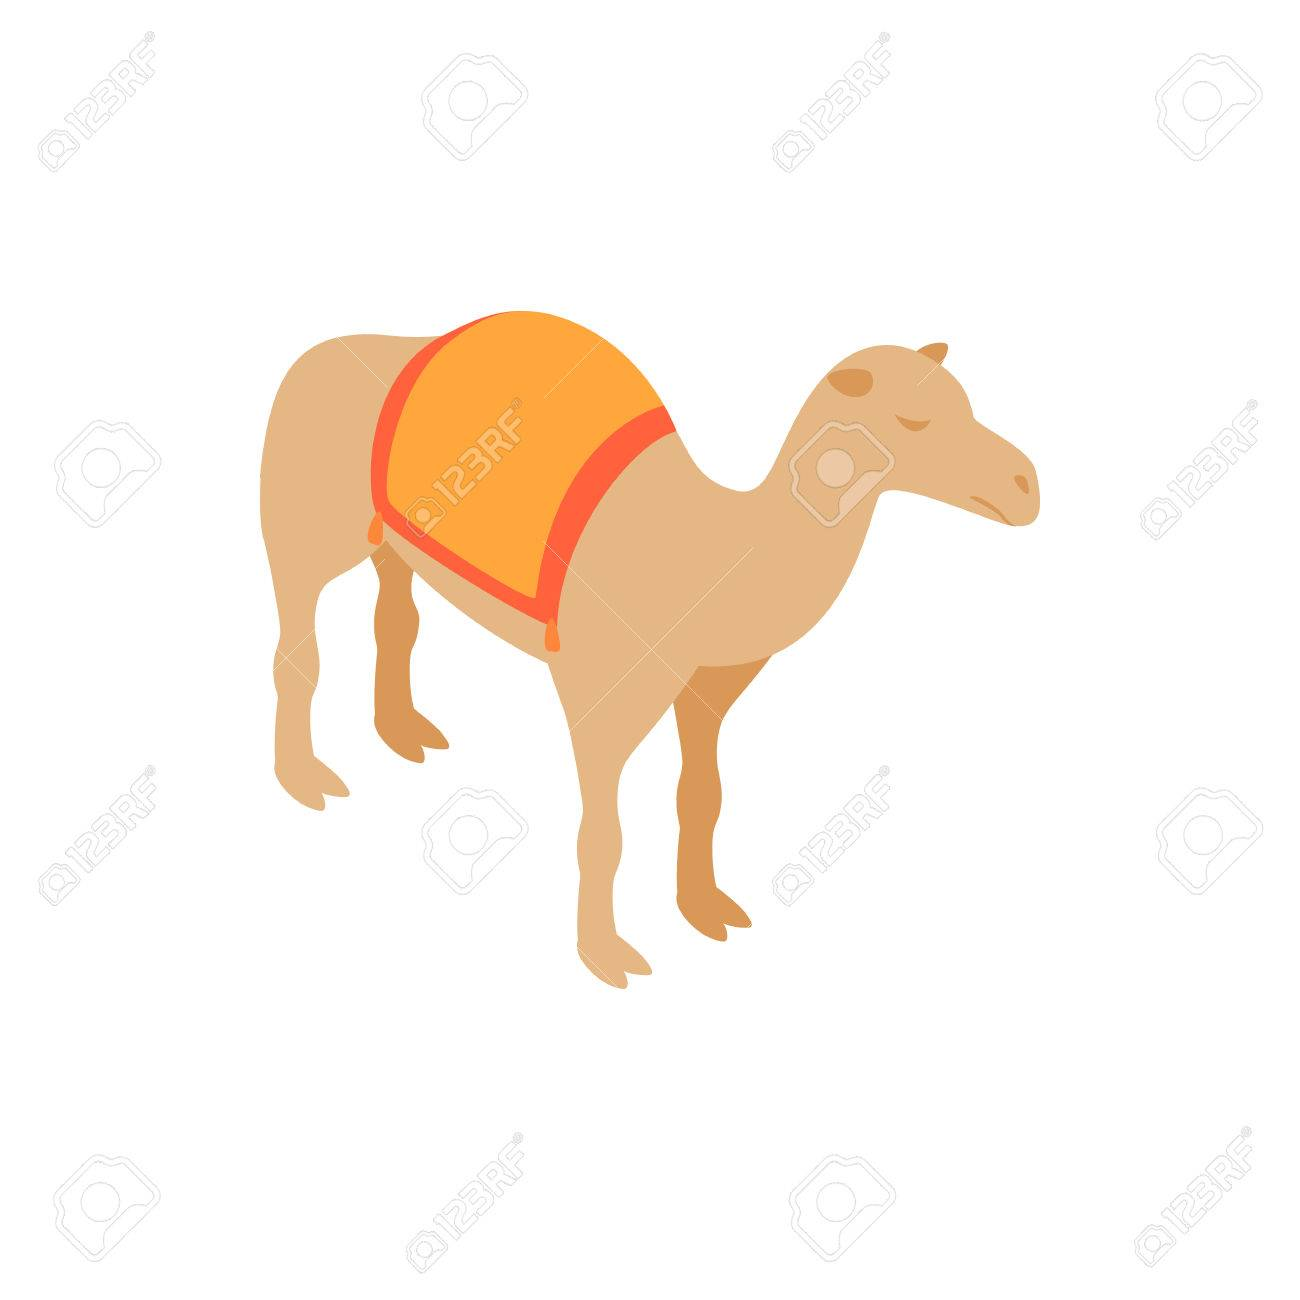 Camel icon in isometric 3d style isolated on white background camel icon in isometric 3d style isolated on white background desert animal symbol stock vector biocorpaavc Images